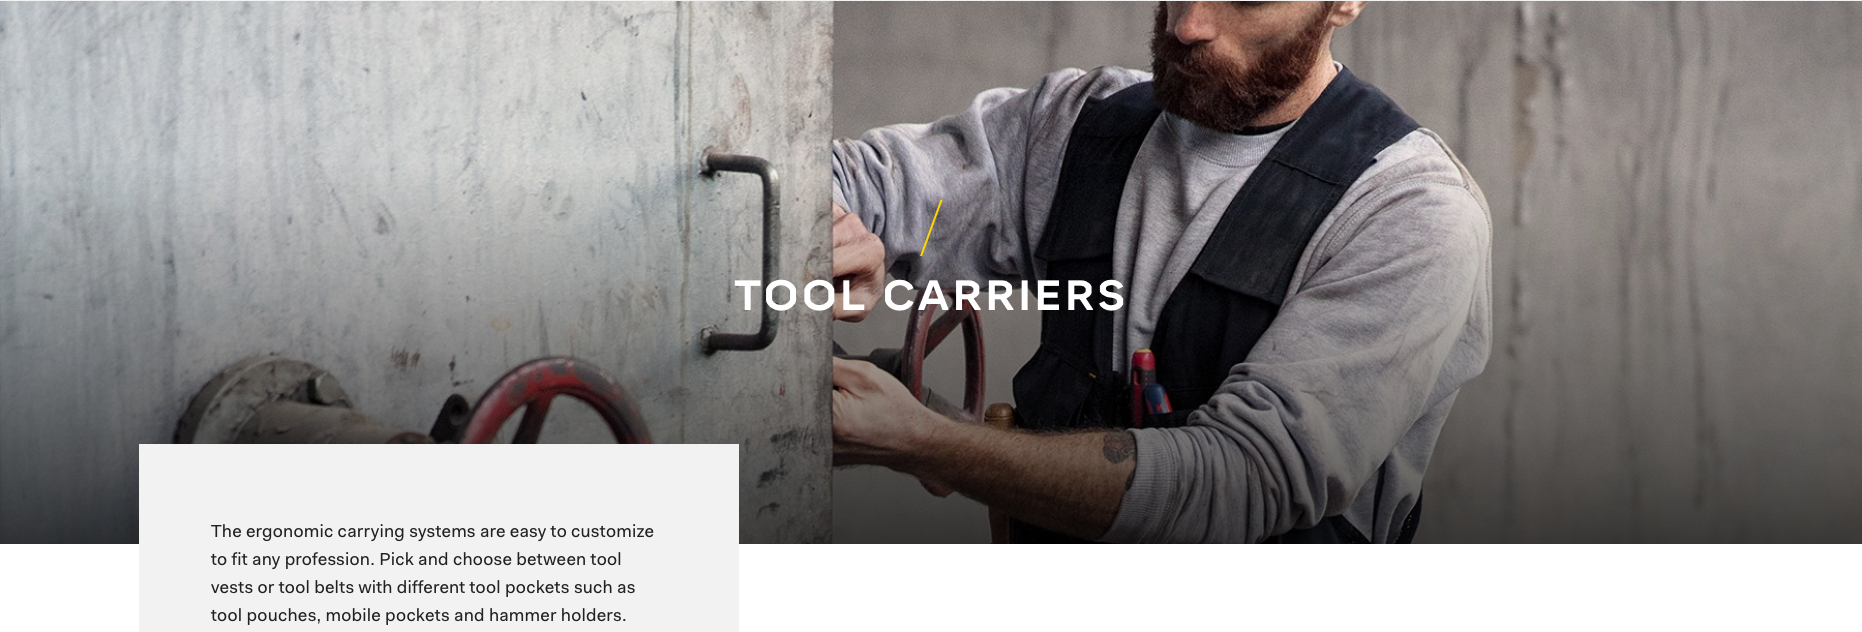 Snickers Tool Carriers